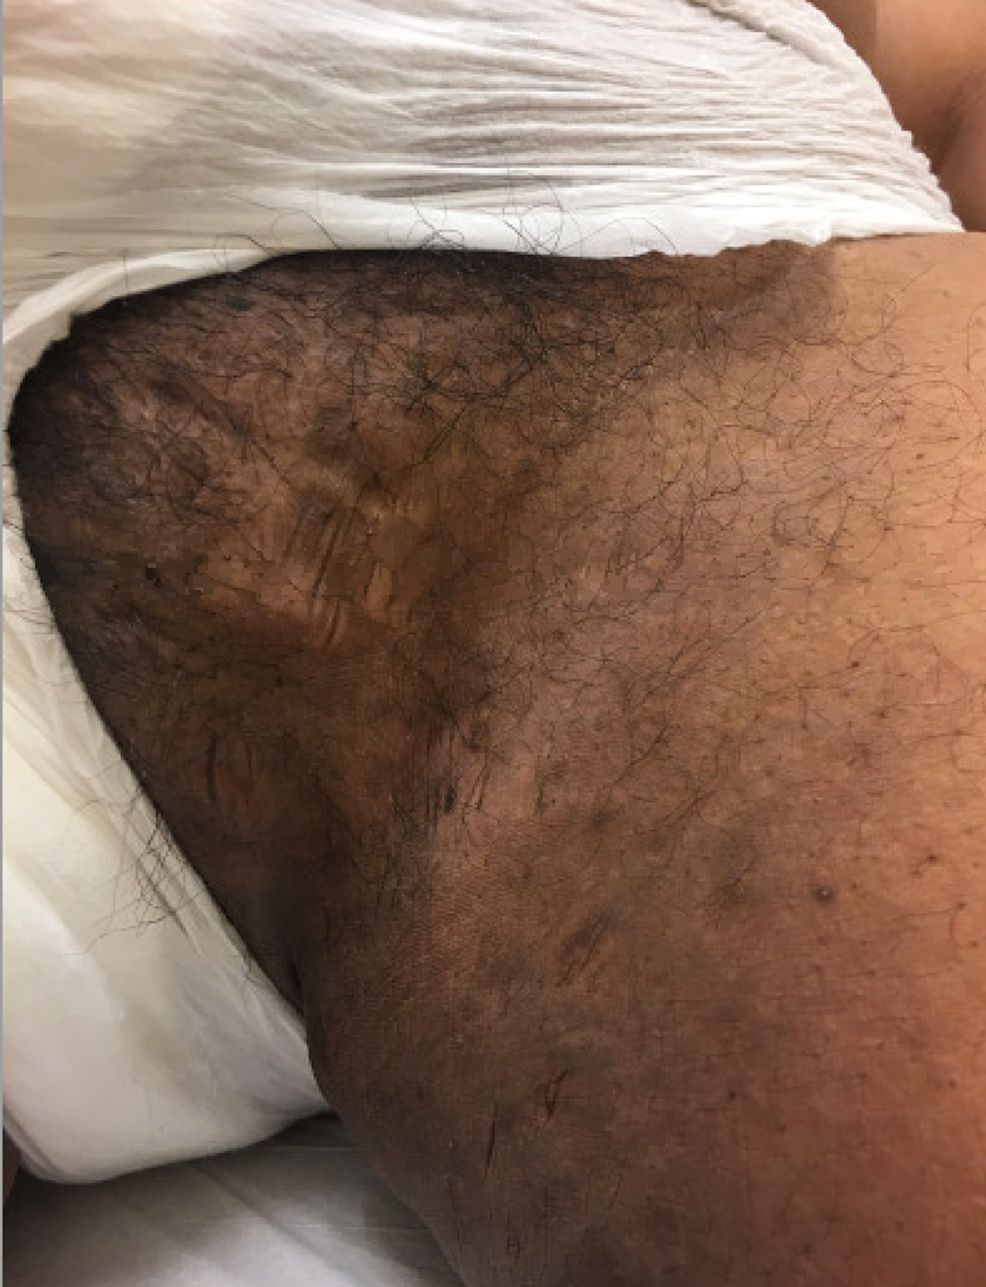 Hidradenitis-suppurativa-manifesting-as-hyperpigmented-scars-and-nodules-on-the-groin-fold-and-inner-thigh-